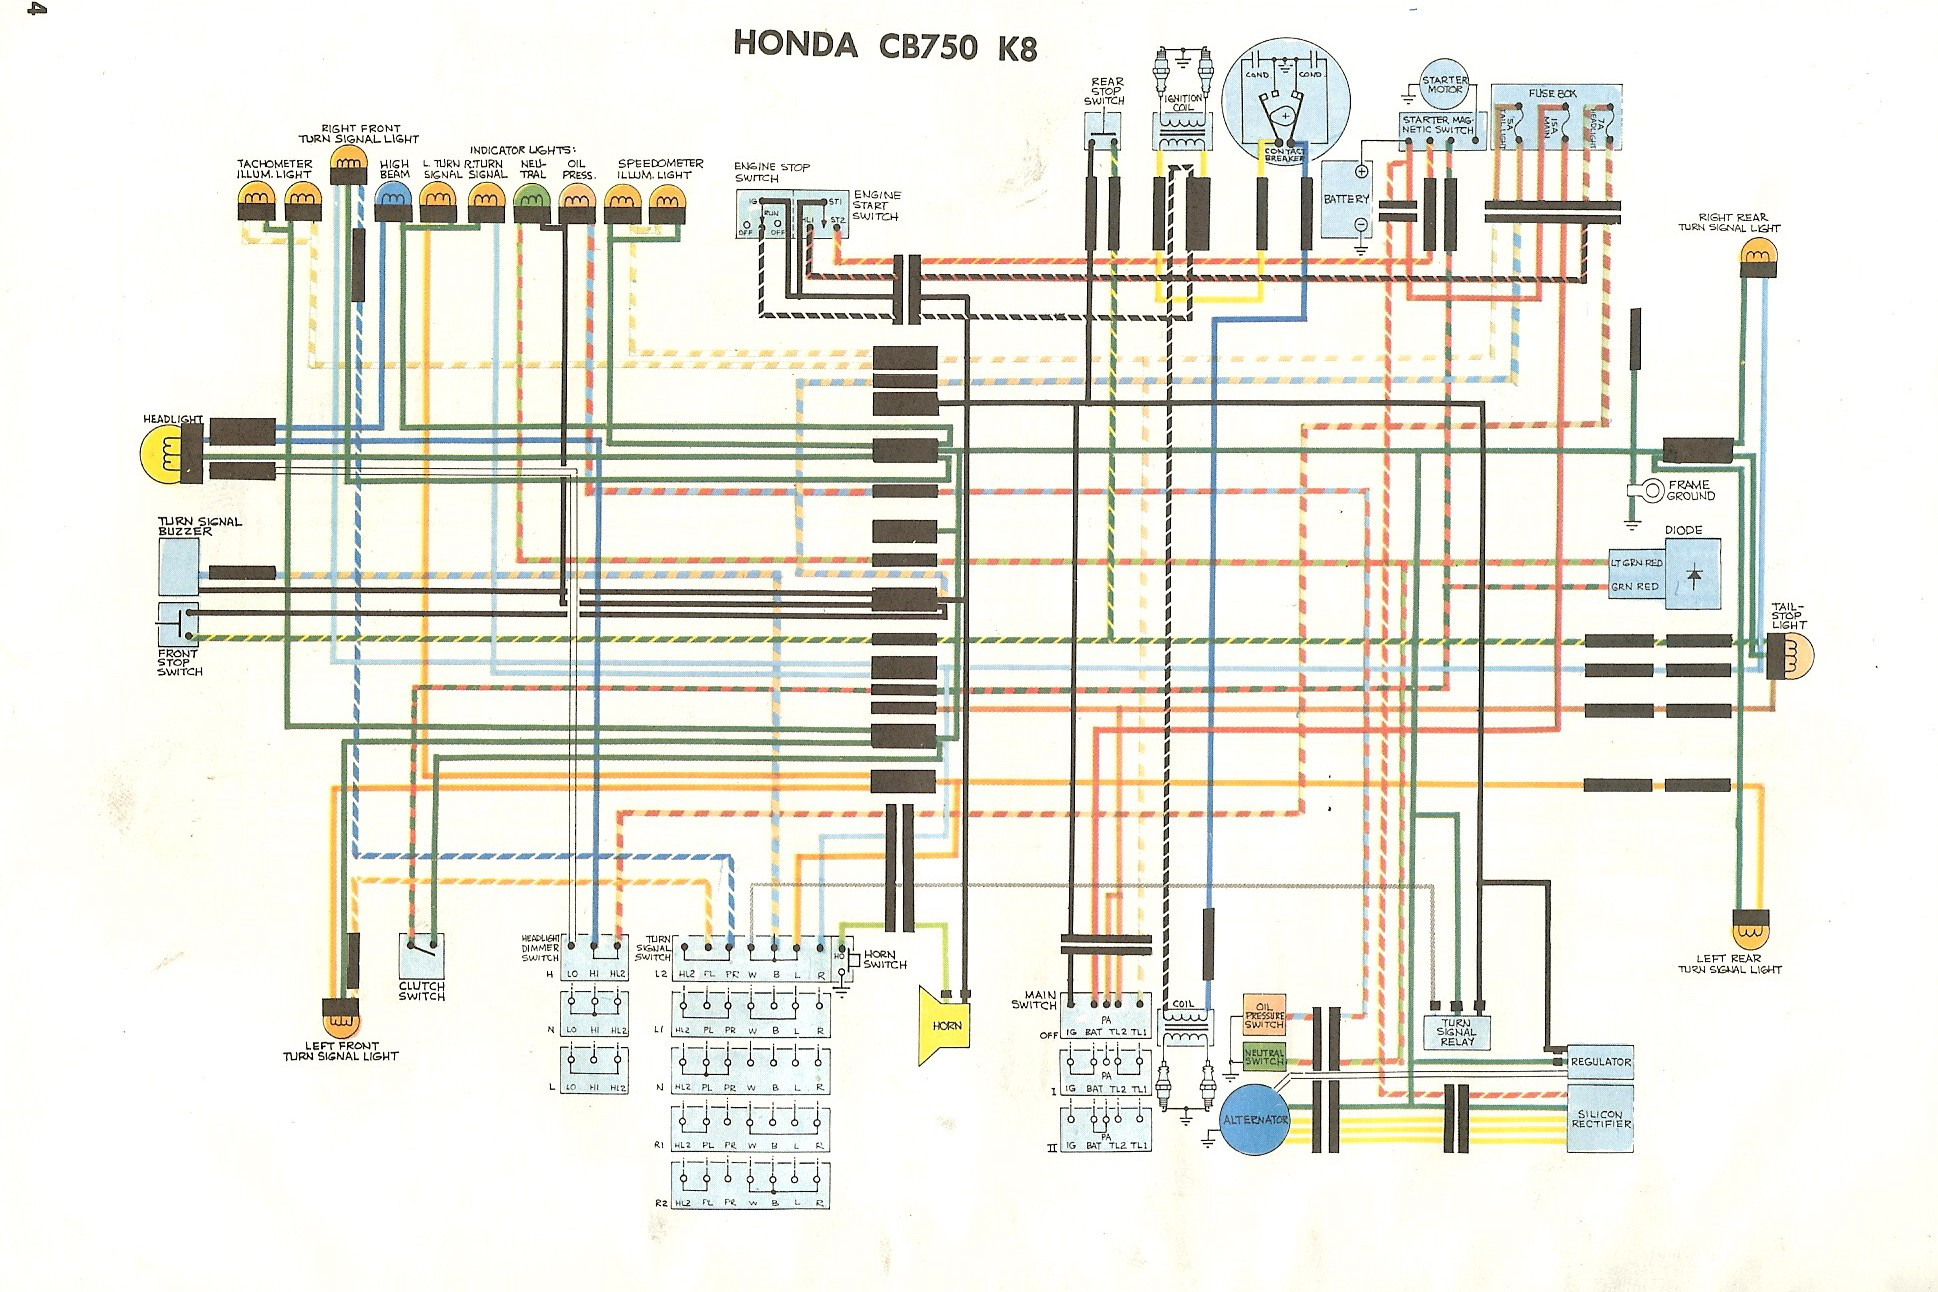 Wiring Diagrams For 750 Honda Shadow 2012 Schematics 2008 Diagram Jx110 Diy Enthusiasts U2022 Rh Broadwaycomputers Us Motorcycle 1986 Vt1100